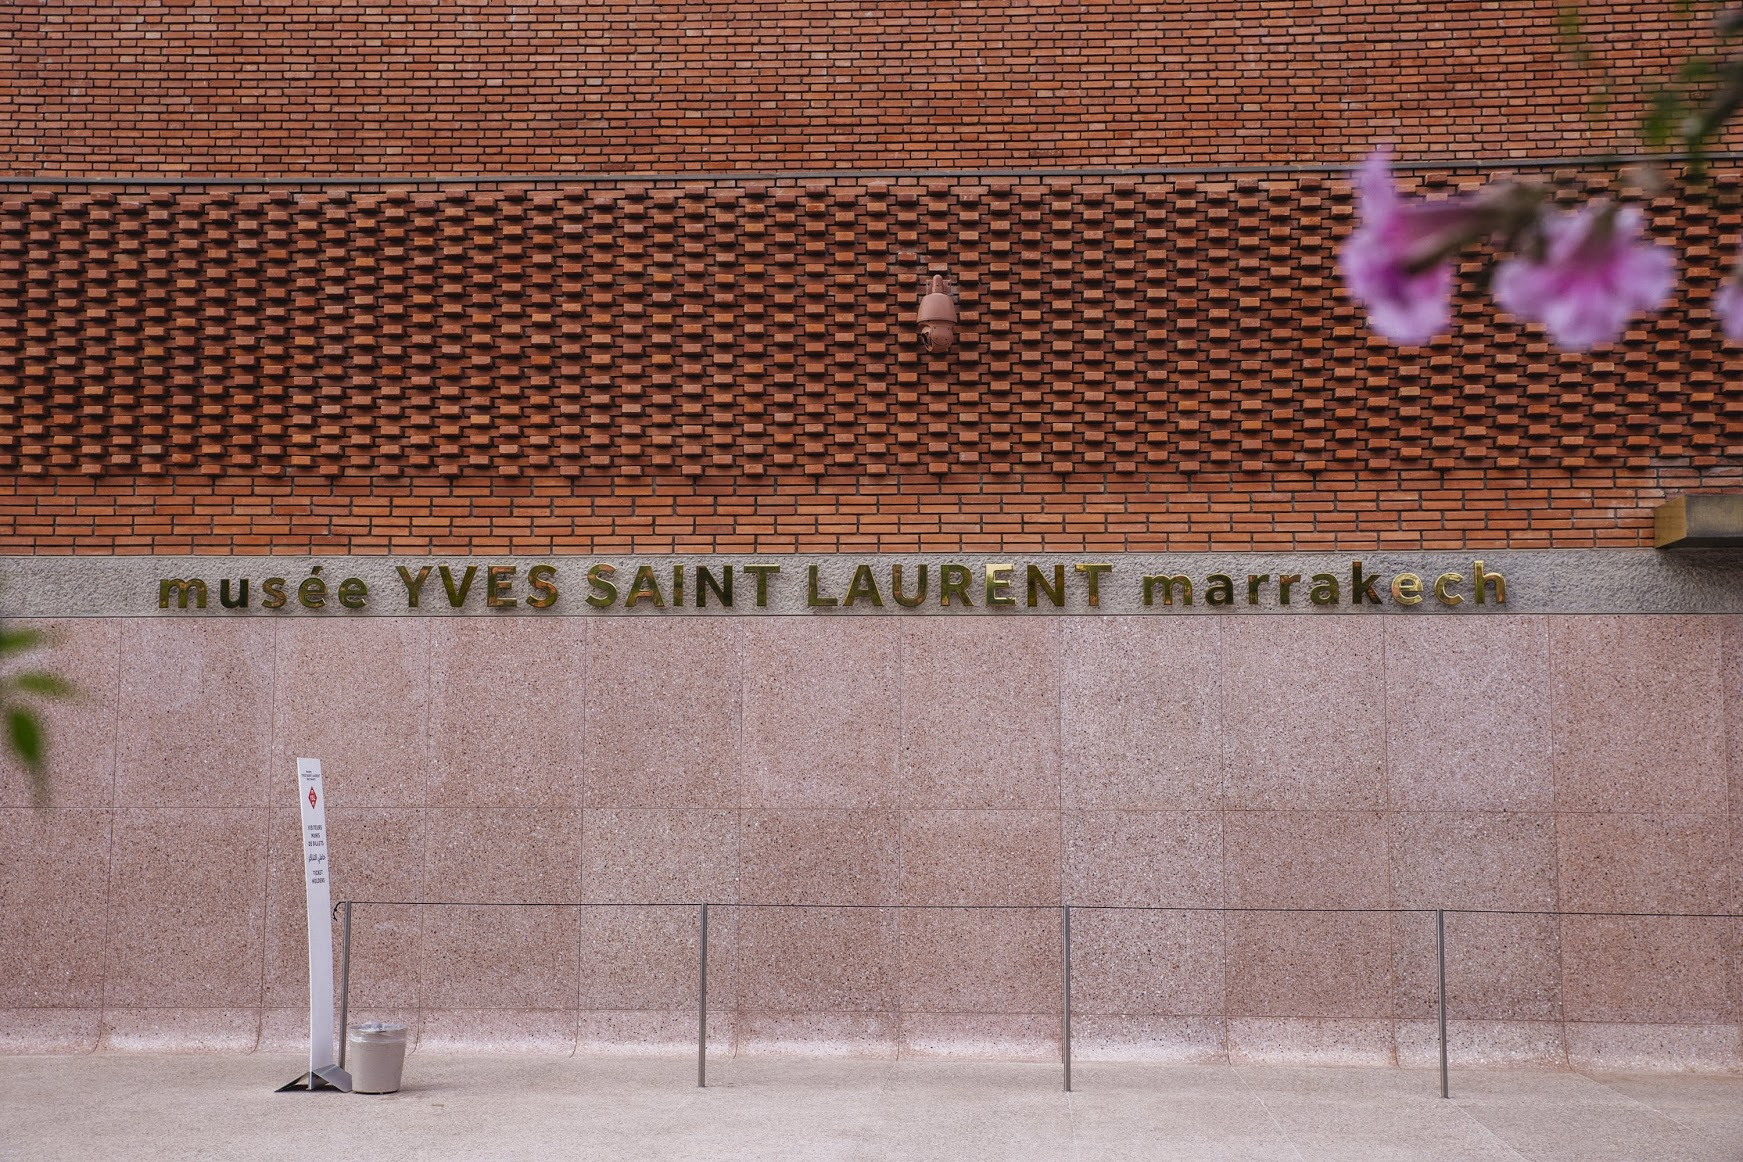 Visit to the Yves Saint Laurent Museum which was great, but unfortunately, you can't photograph so you'll have to take my word for it (or visit yourself).